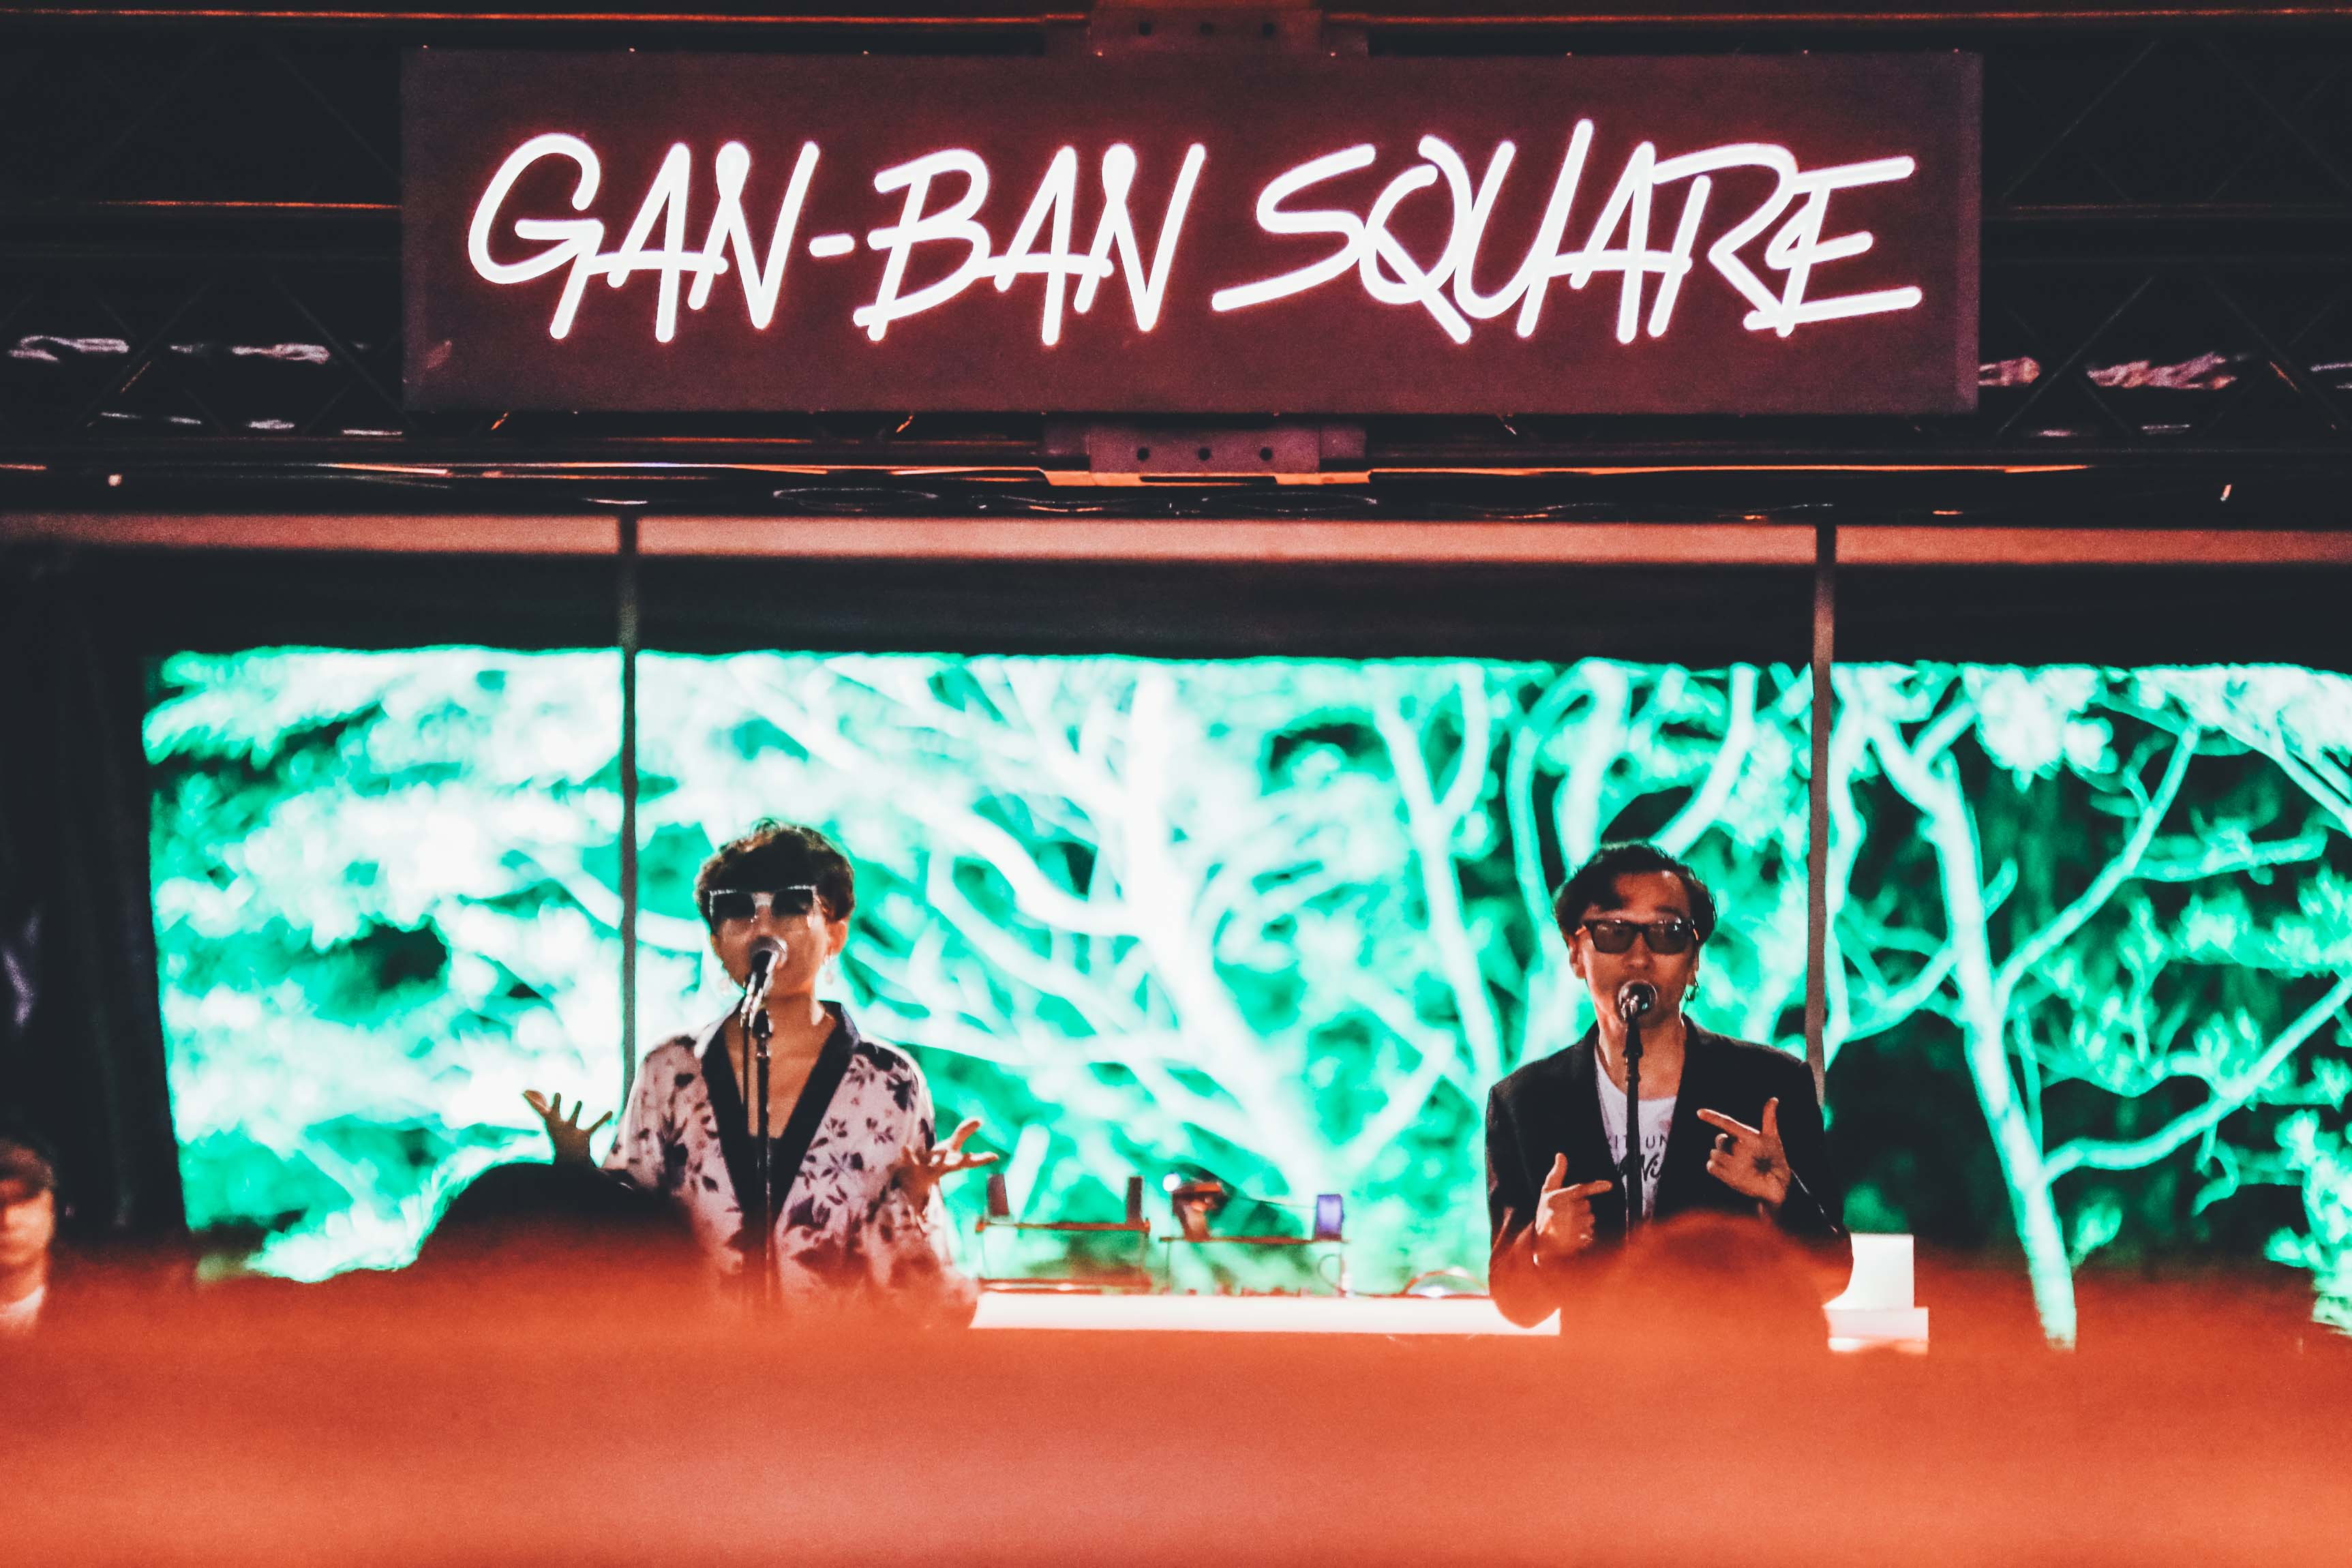 gbpg_day3-10 FRF'18 GAN-BAN SQUARE PHOTO GALLERY #fujirock